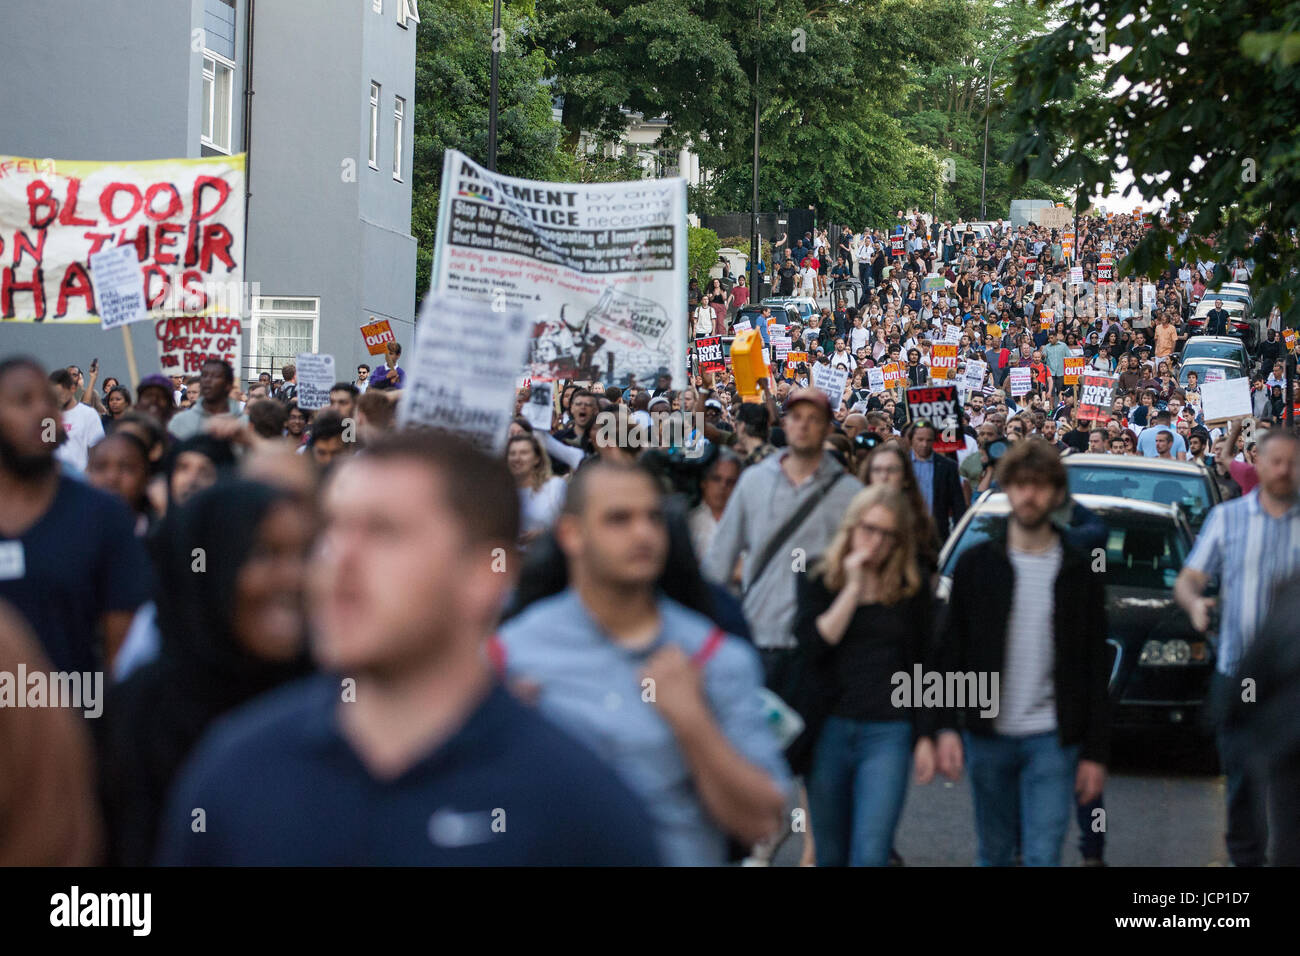 London, UK. 16th June, 2017. Members of the community of North Kensington take part in a protest march to demand Stock Photo